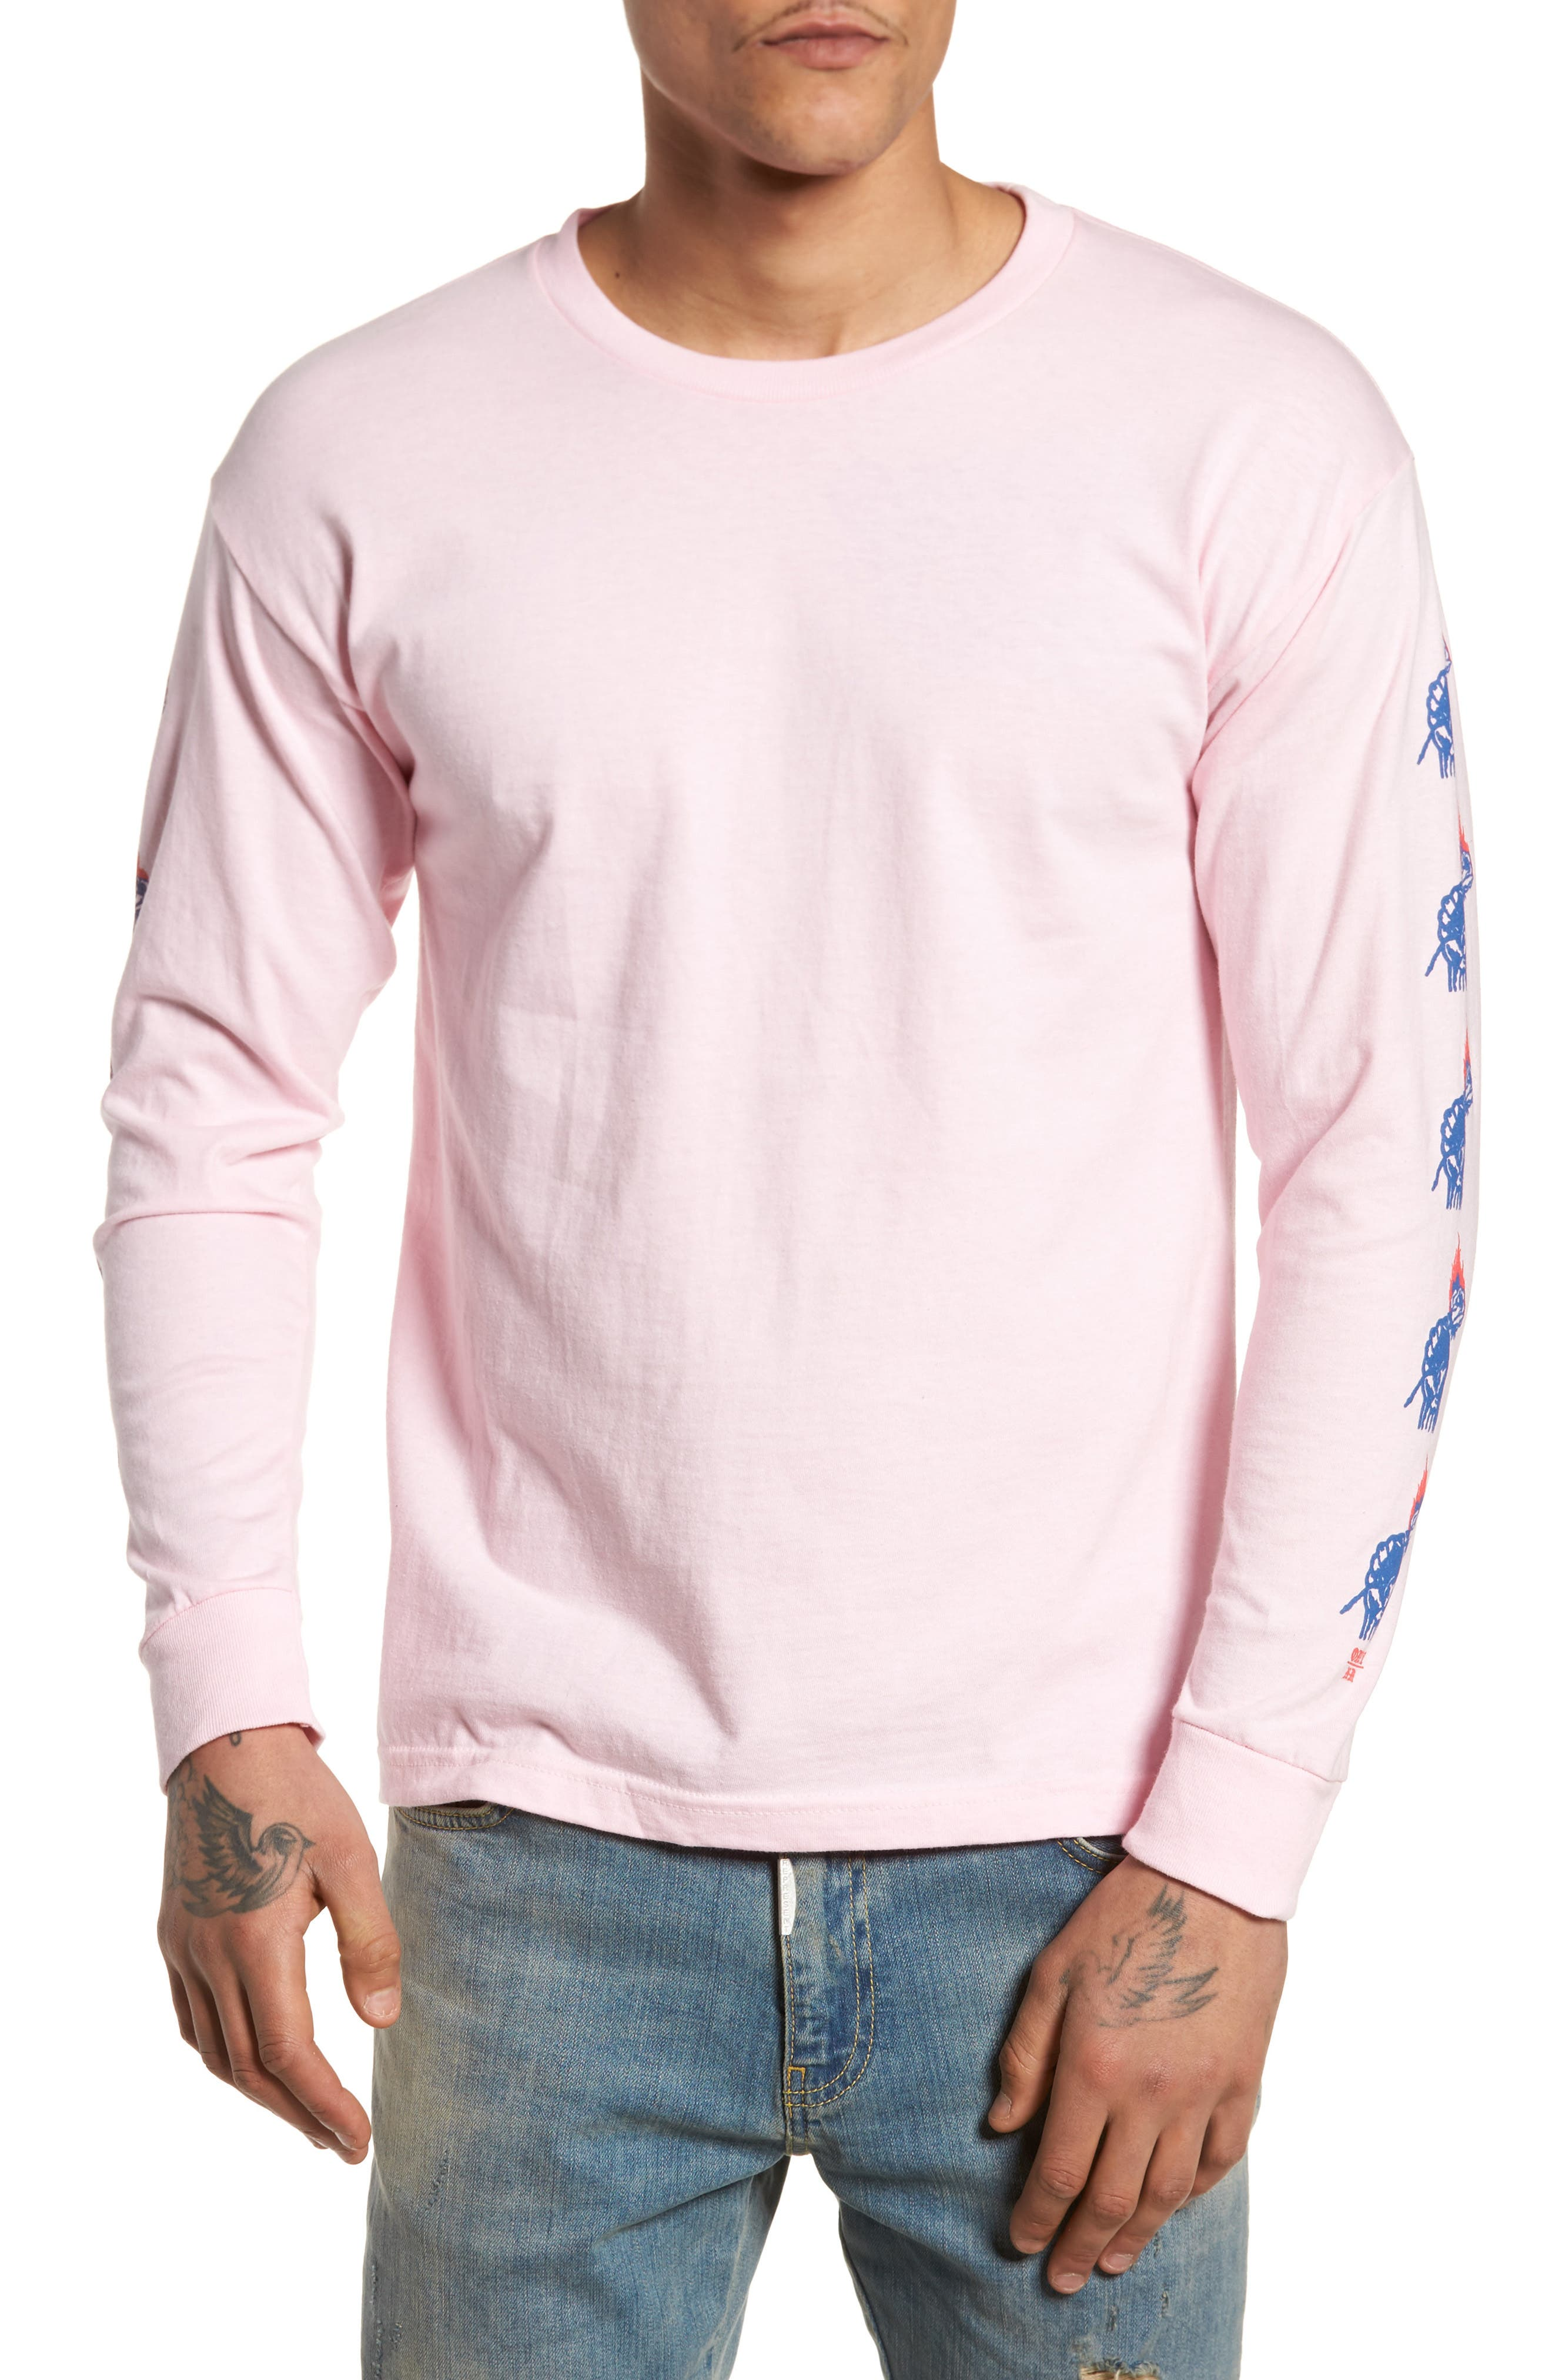 Passion Never Made Artist T-Shirt,                         Main,                         color, Pink